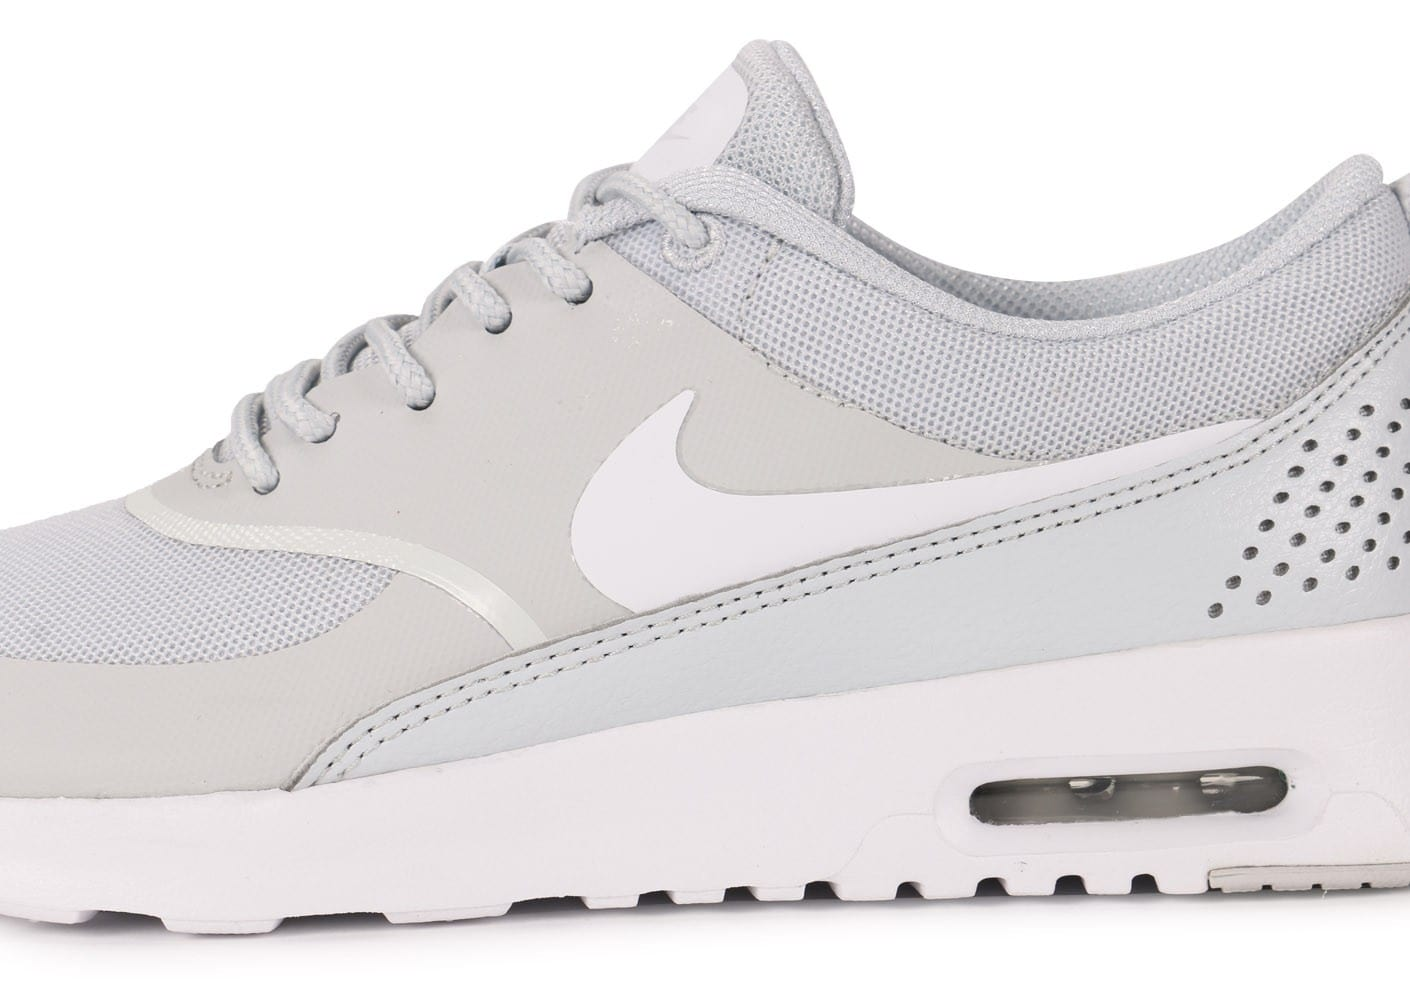 save off e5e76 27271 ... Chaussures Nike Air Max Thea grise vue dessus